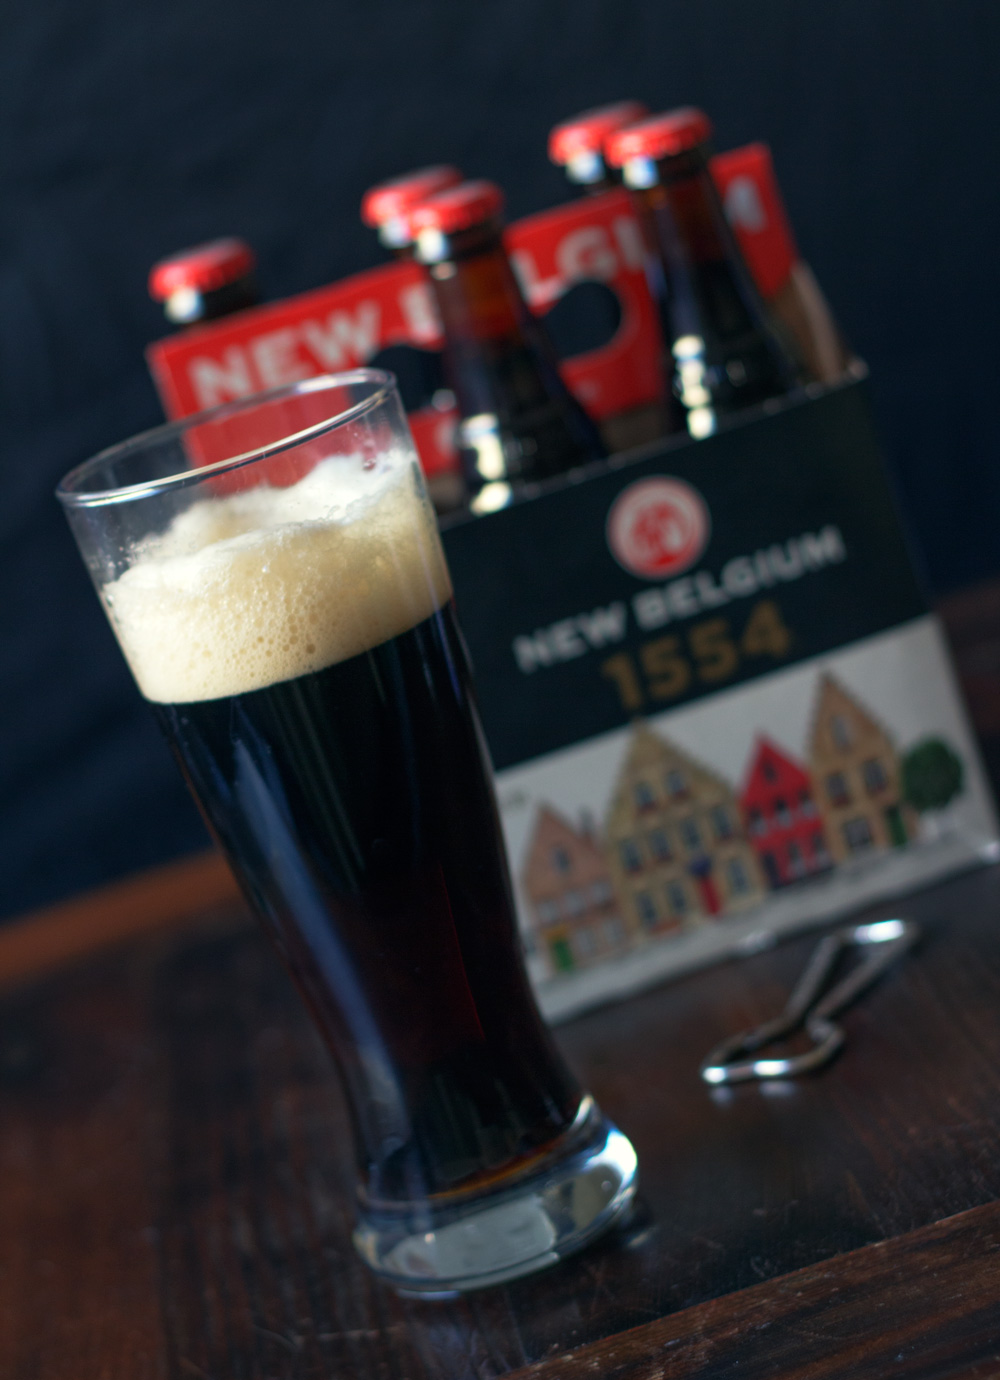 Glass of New Belgium 1554